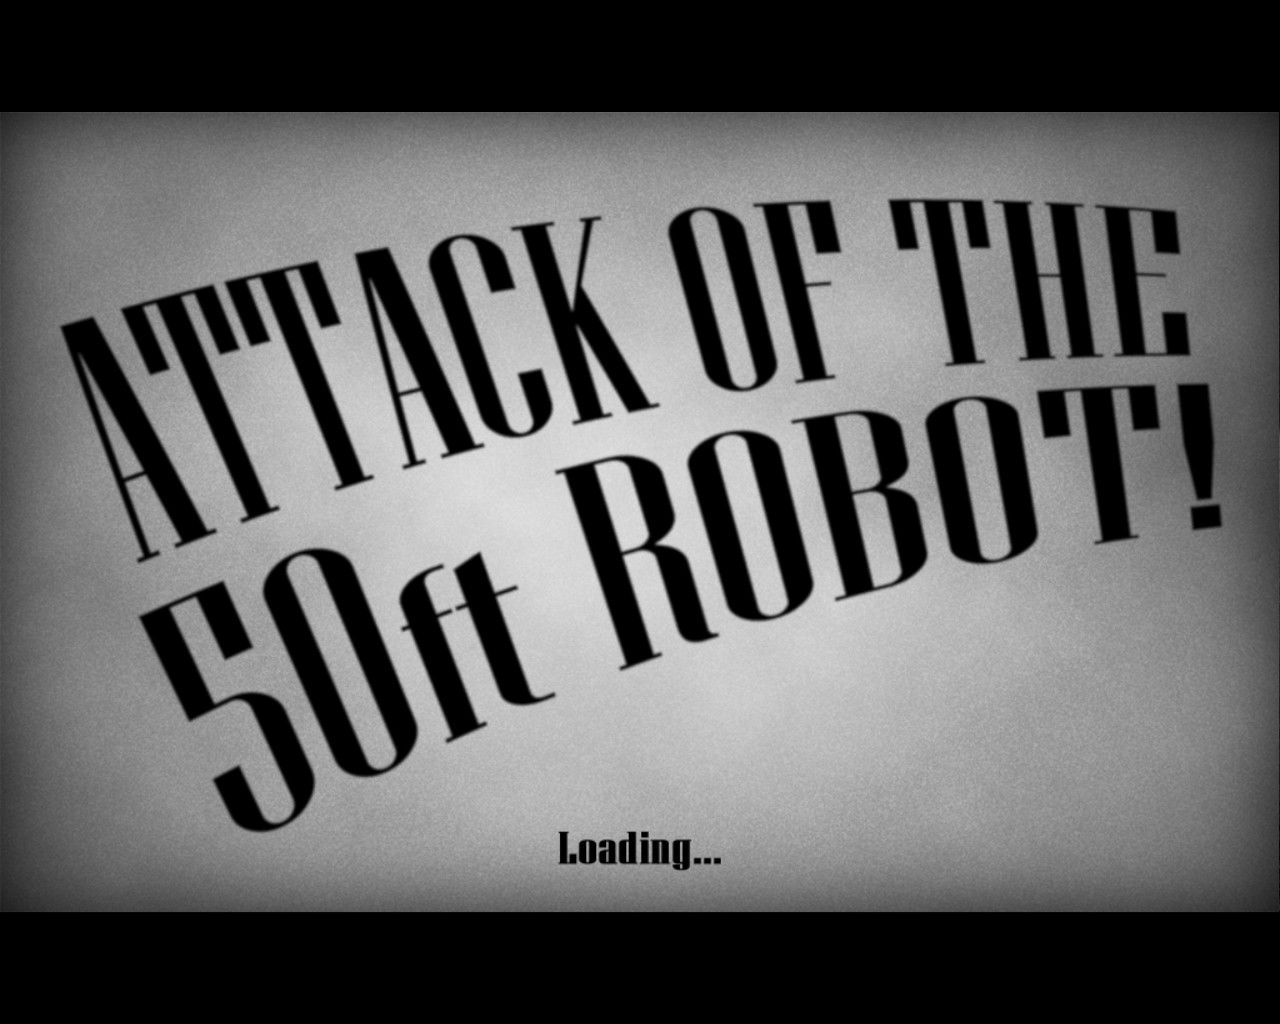 Attack of the 50ft Robot! Windows Loading screen.